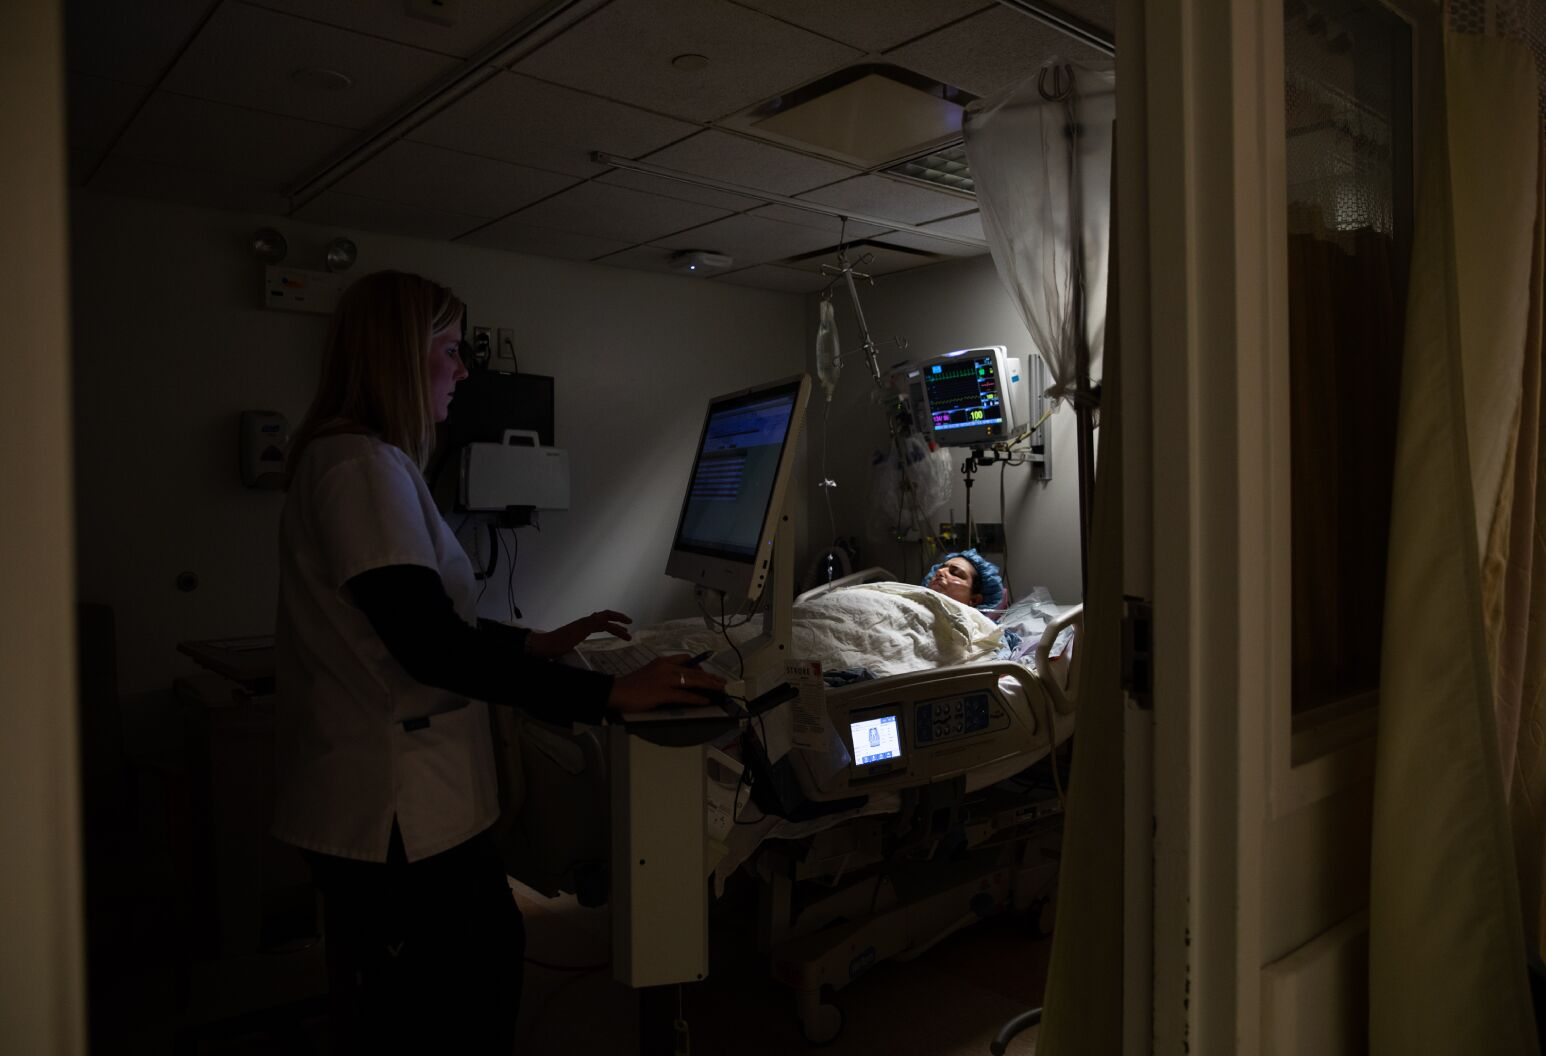 A nurse checks in on Kimberly after the surgery, during which 80% of her stomach was removed